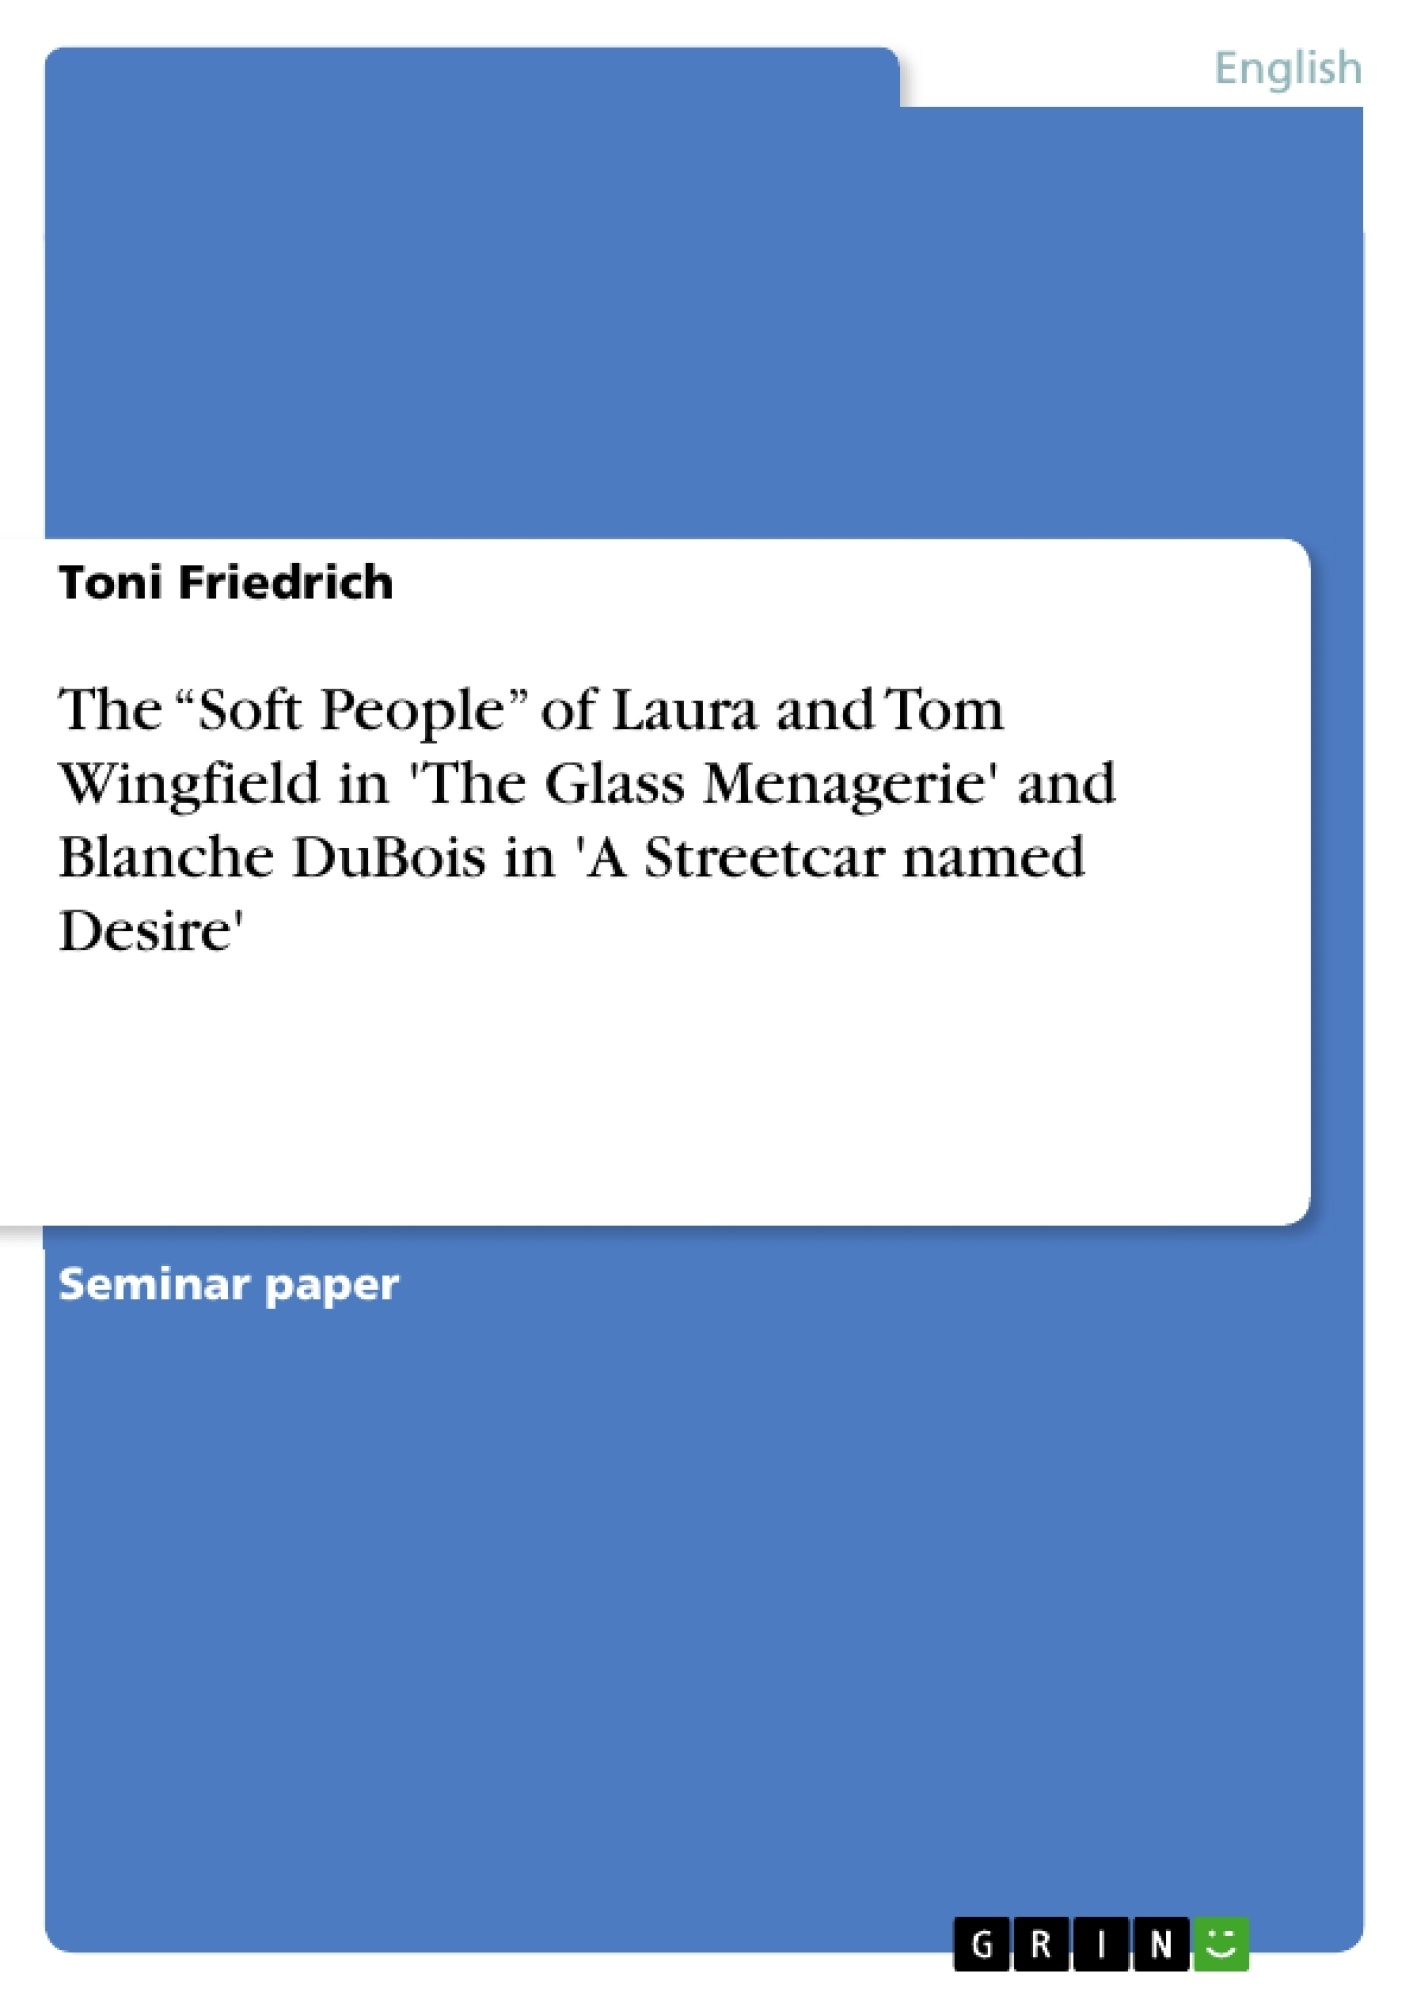 """Title: The """"Soft People"""" of Laura and Tom Wingfield in 'The Glass Menagerie' and Blanche DuBois in 'A Streetcar named Desire'"""